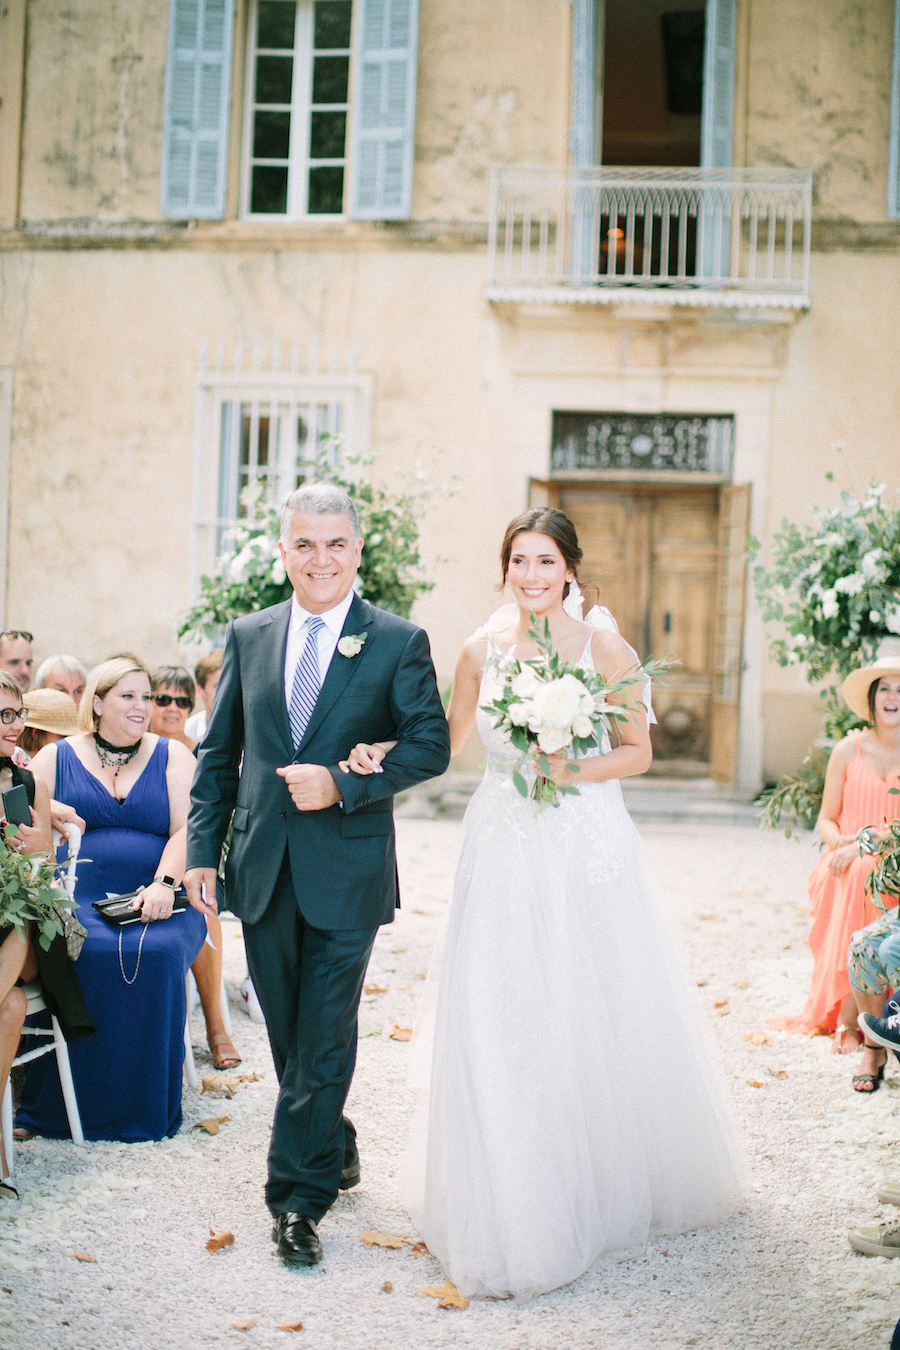 saya-photography-wedding-photographer-provence-chateau-de-robernier-55.jpg